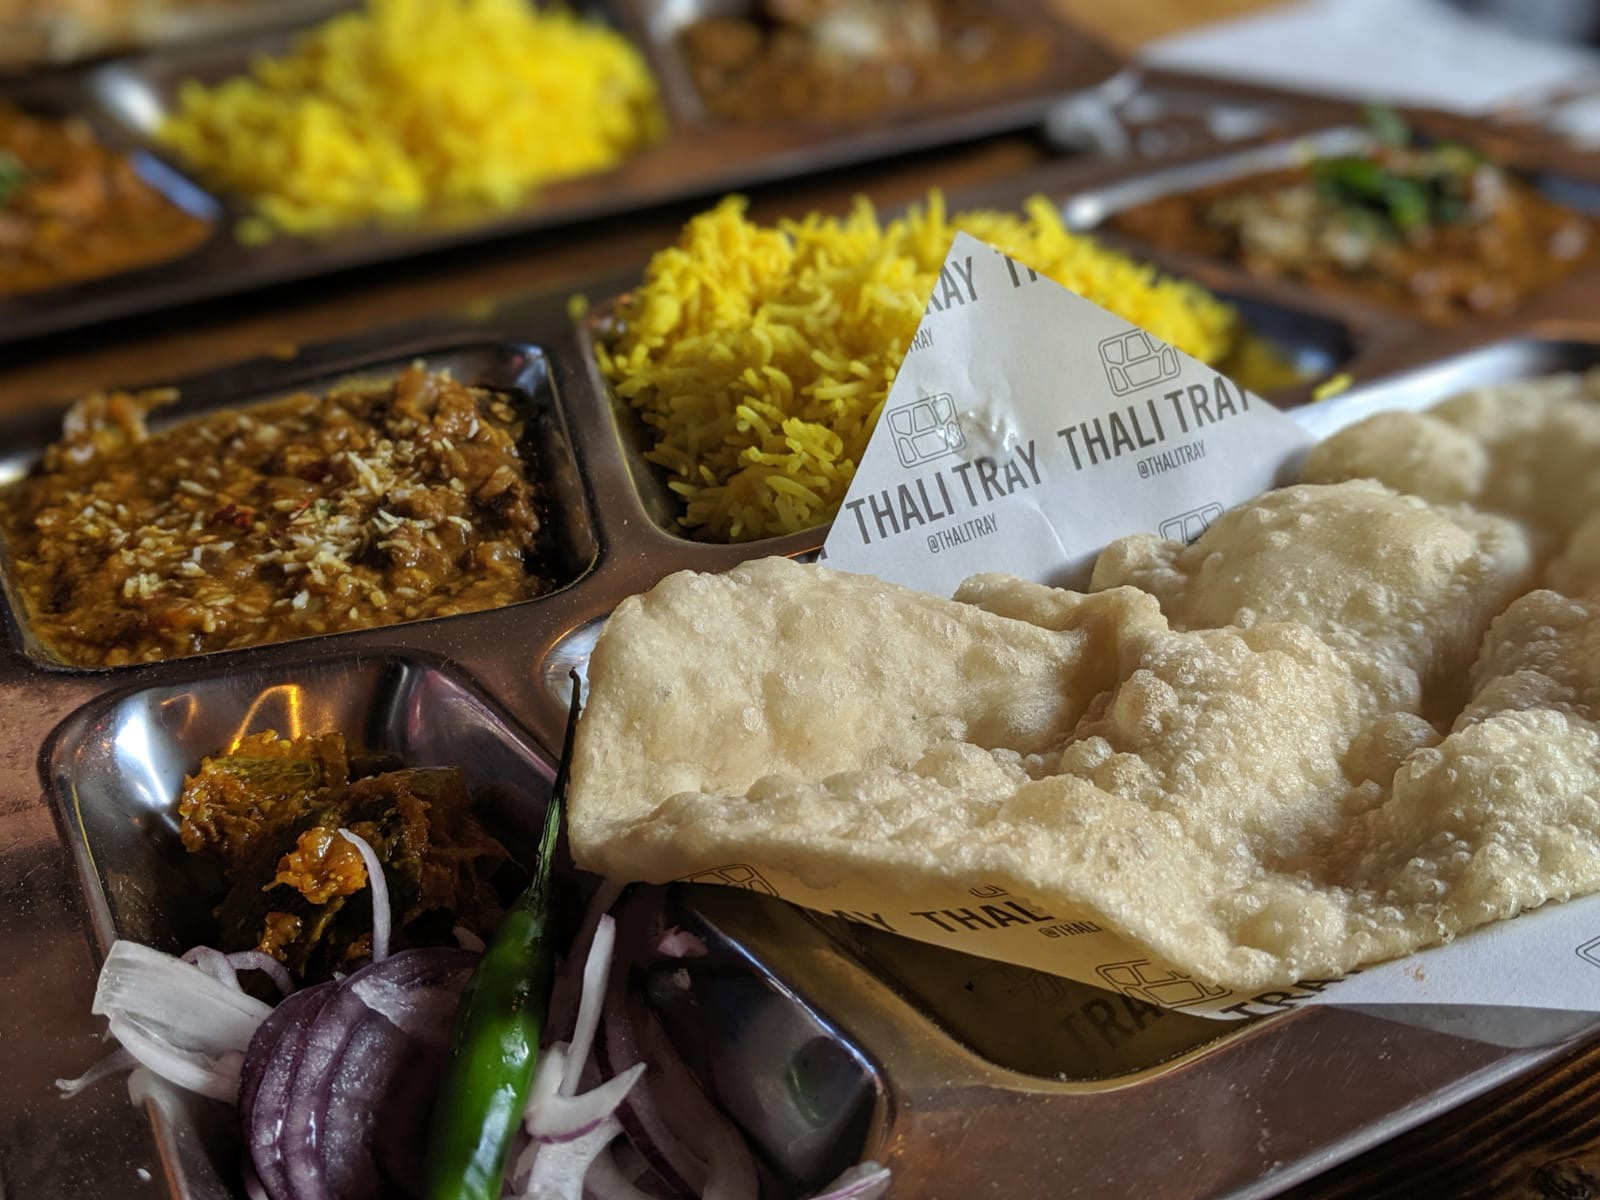 11 Fun Date Ideas in Newcastle Upon Tyne - Thali Tray